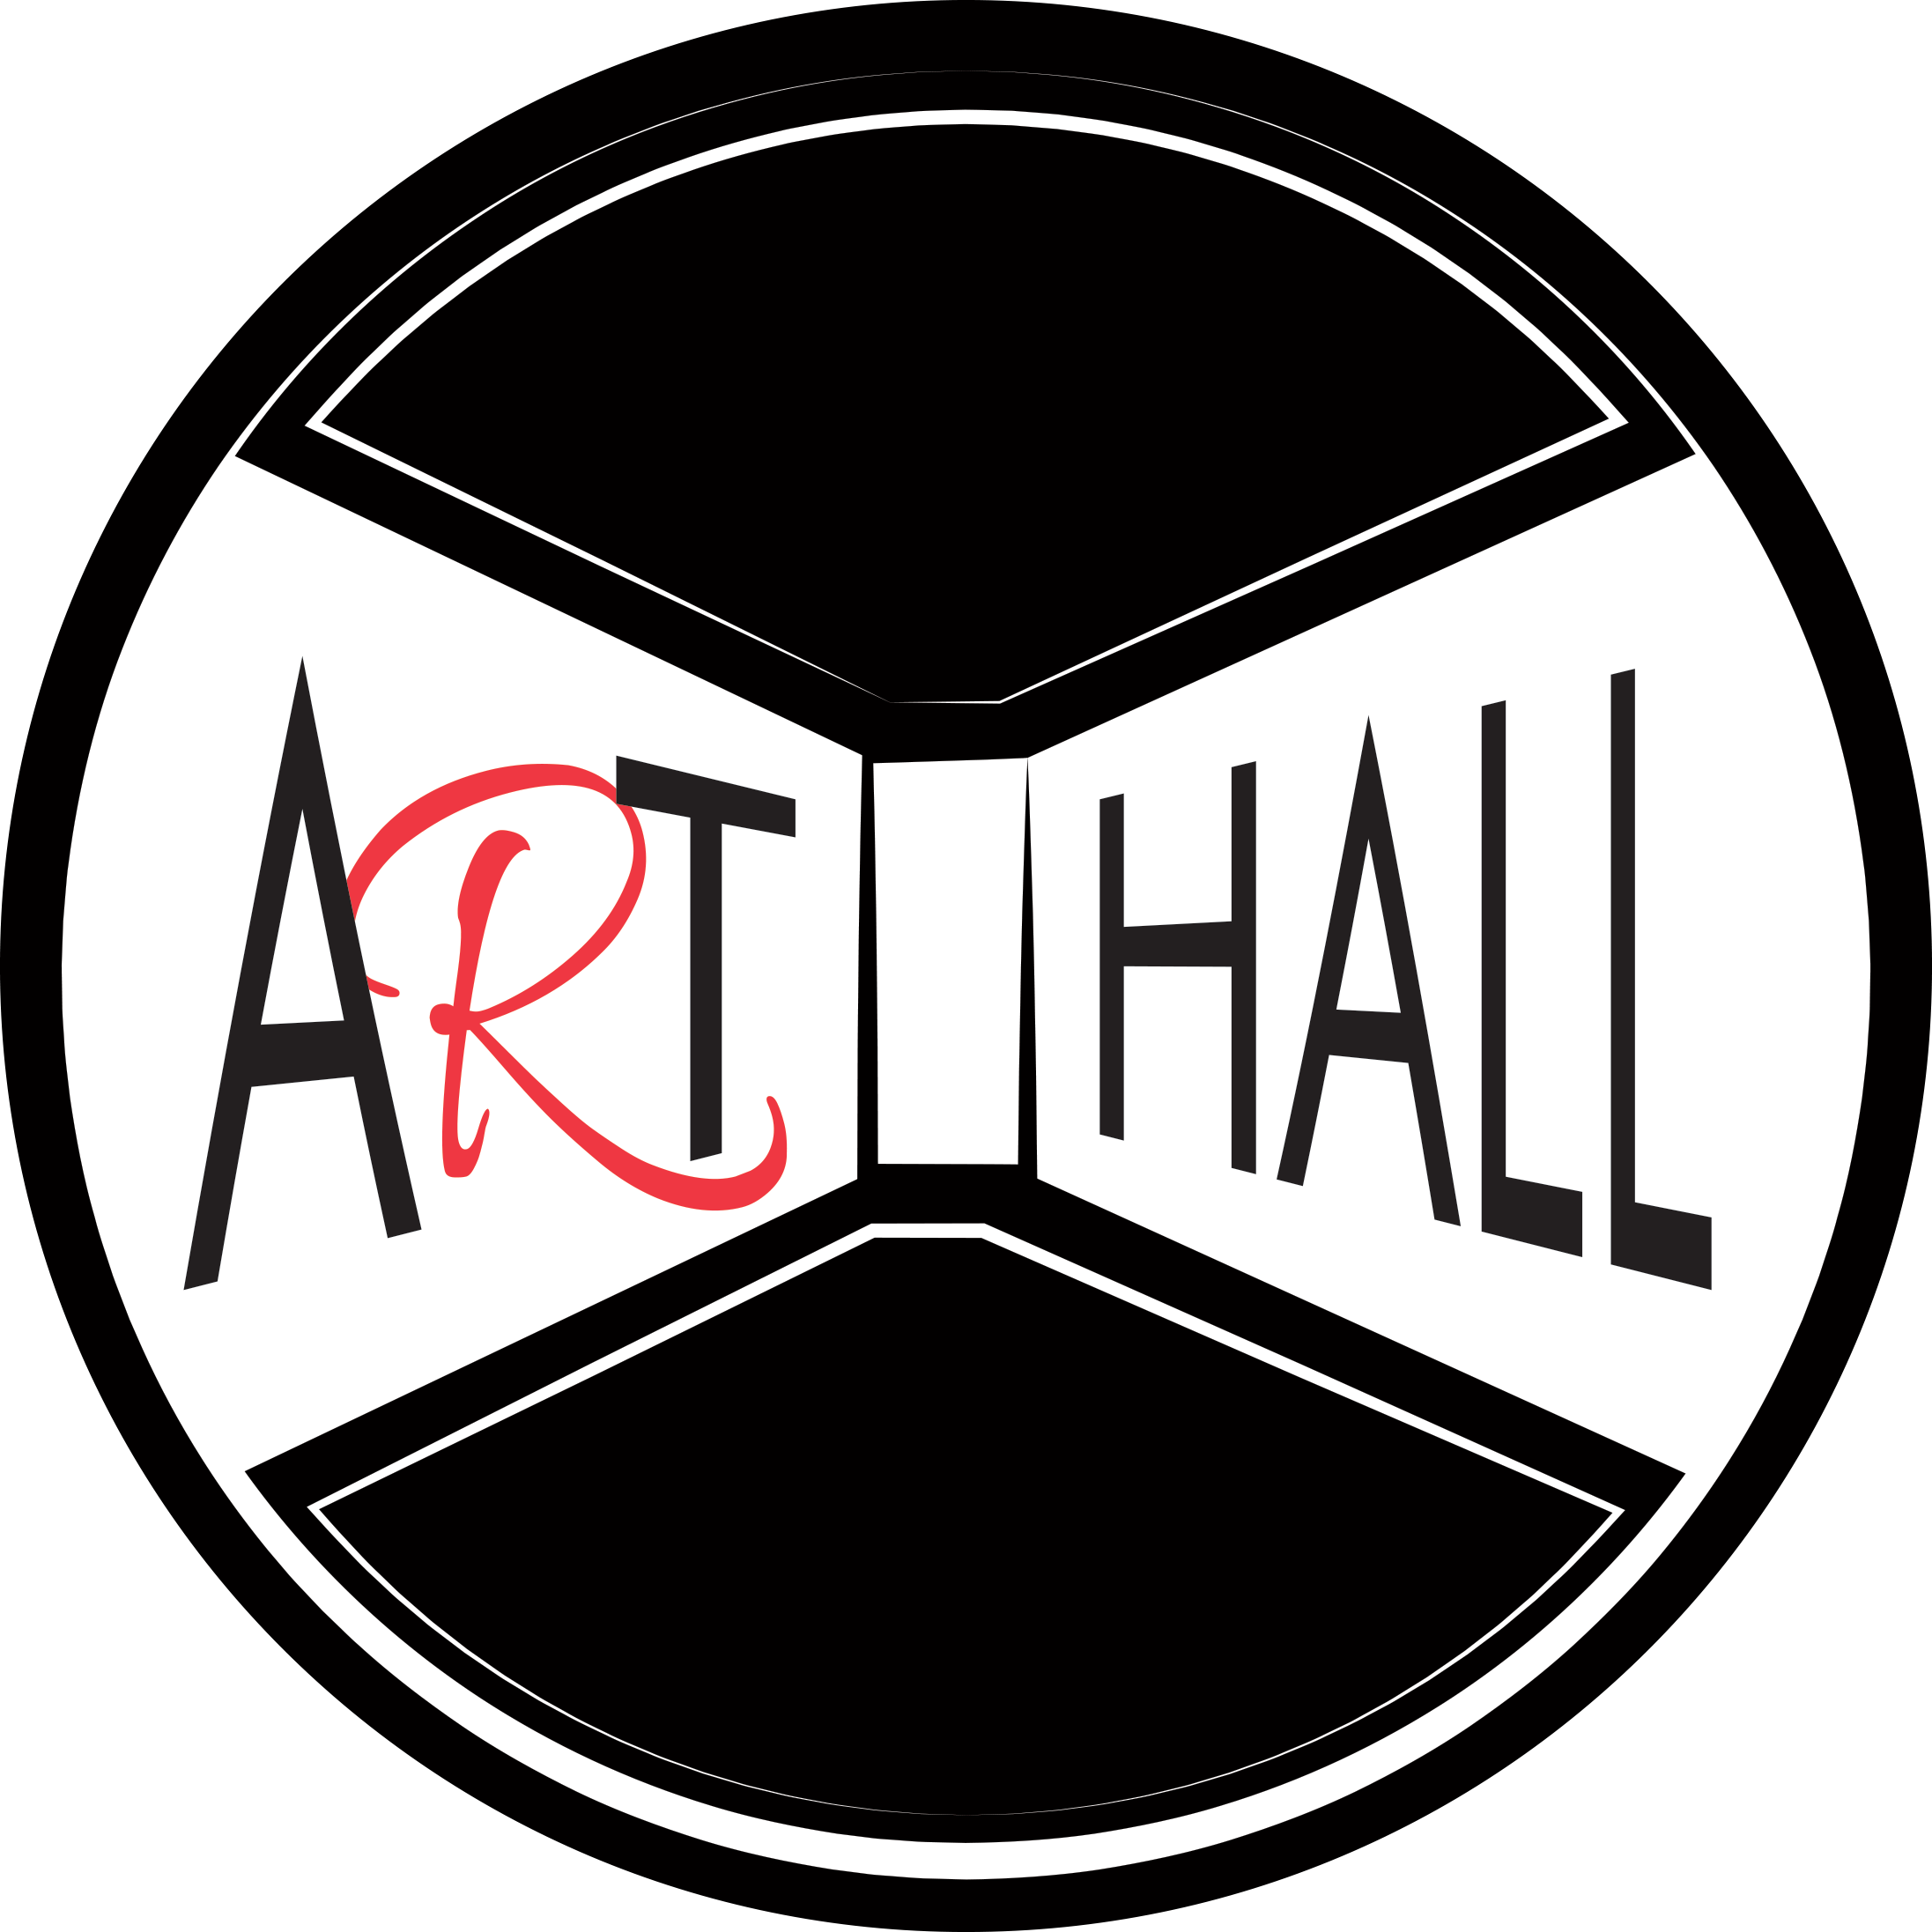 ART HALL LOGO.png